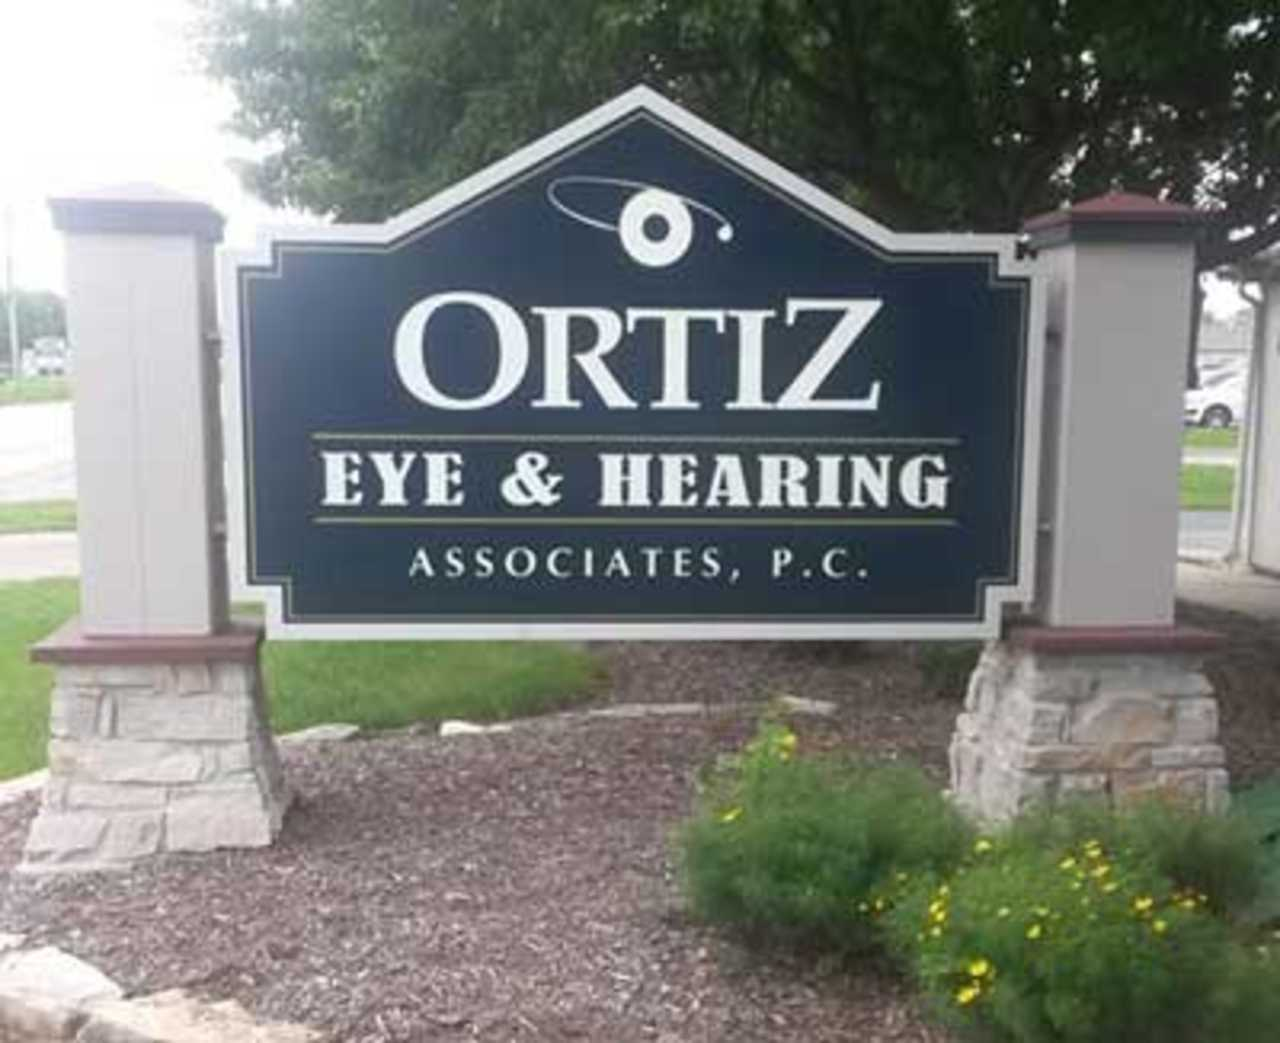 Ortiz Eye & Hearing Associates - Medical - Audiologists in Morris IL